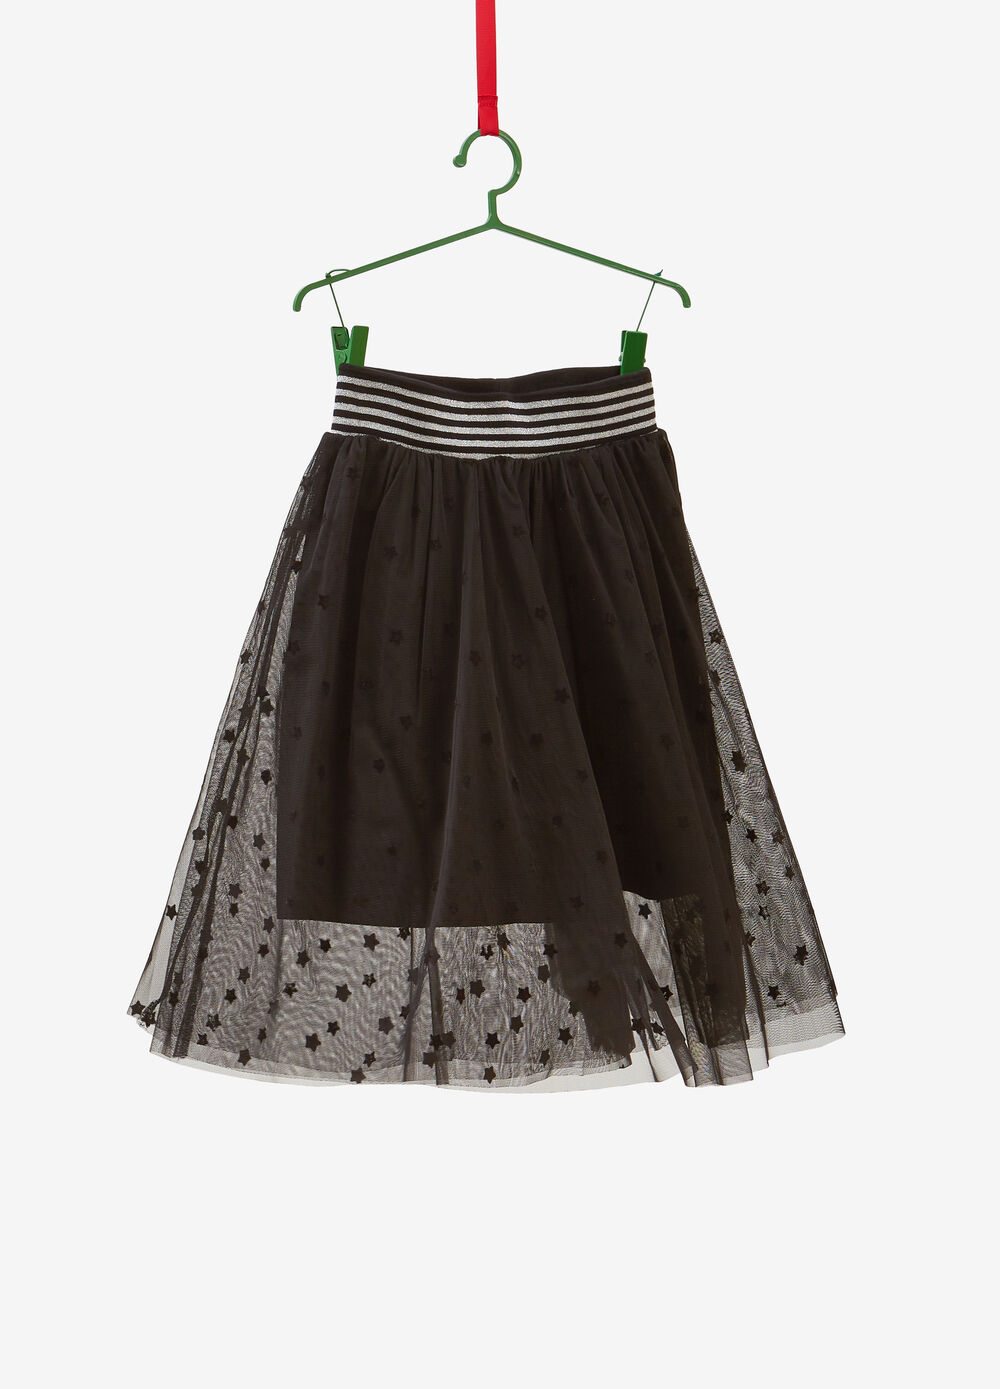 Tulle skirt with star pattern